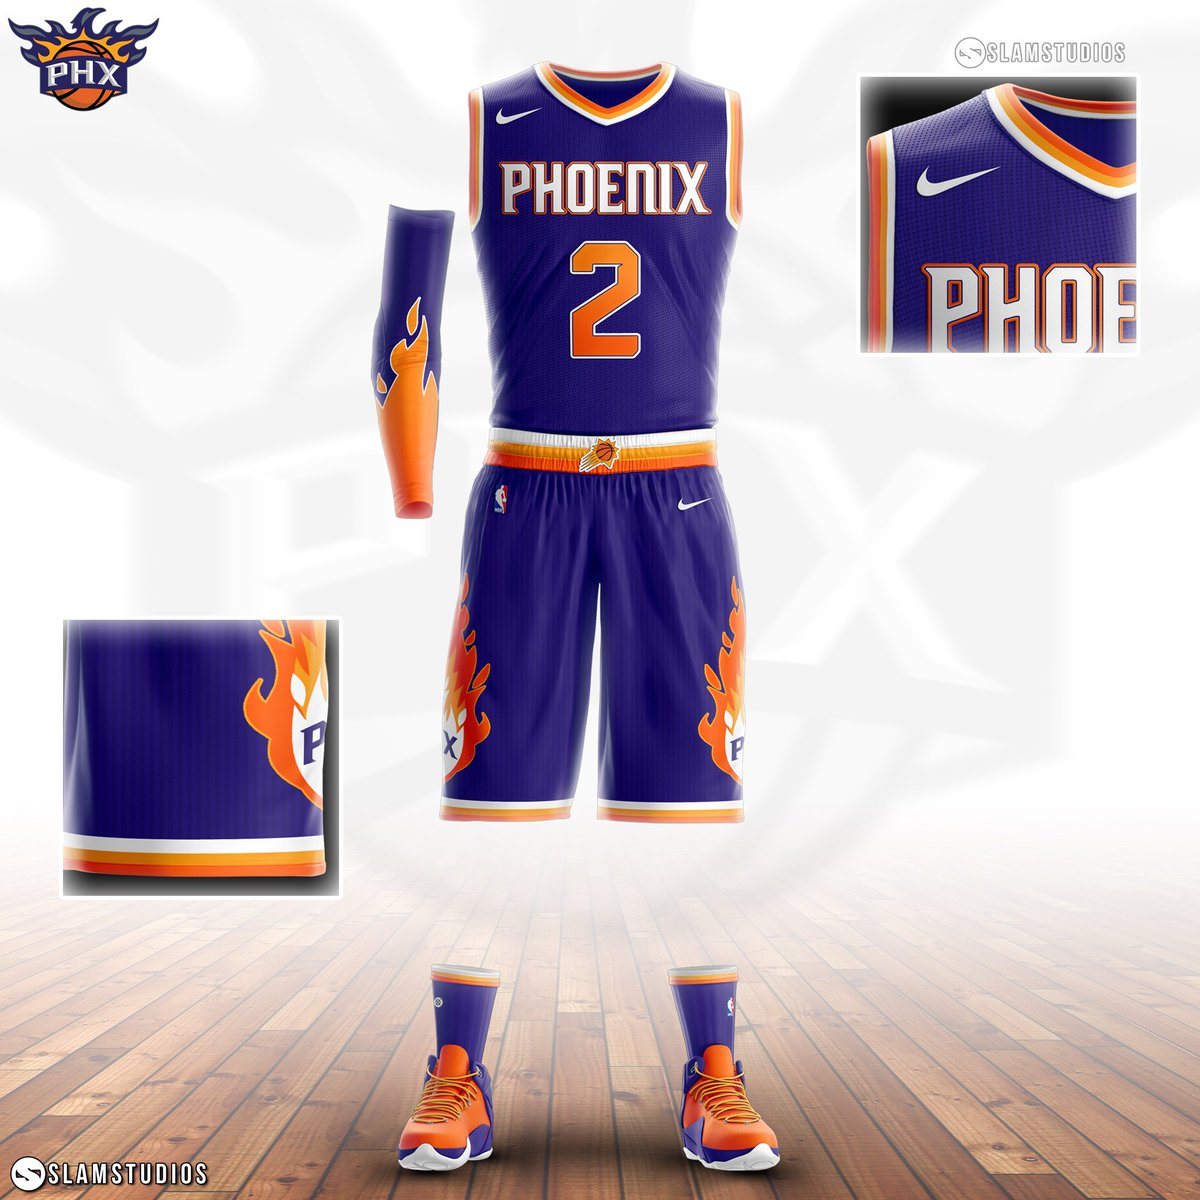 ... 18 season jared dudley phoenix suns 3 classic edition white swingman  jersey 83747 c8e73  usa 1 reply 5 retweets 15 likes mens jared dudley 2016  home new ... 27bf0820d